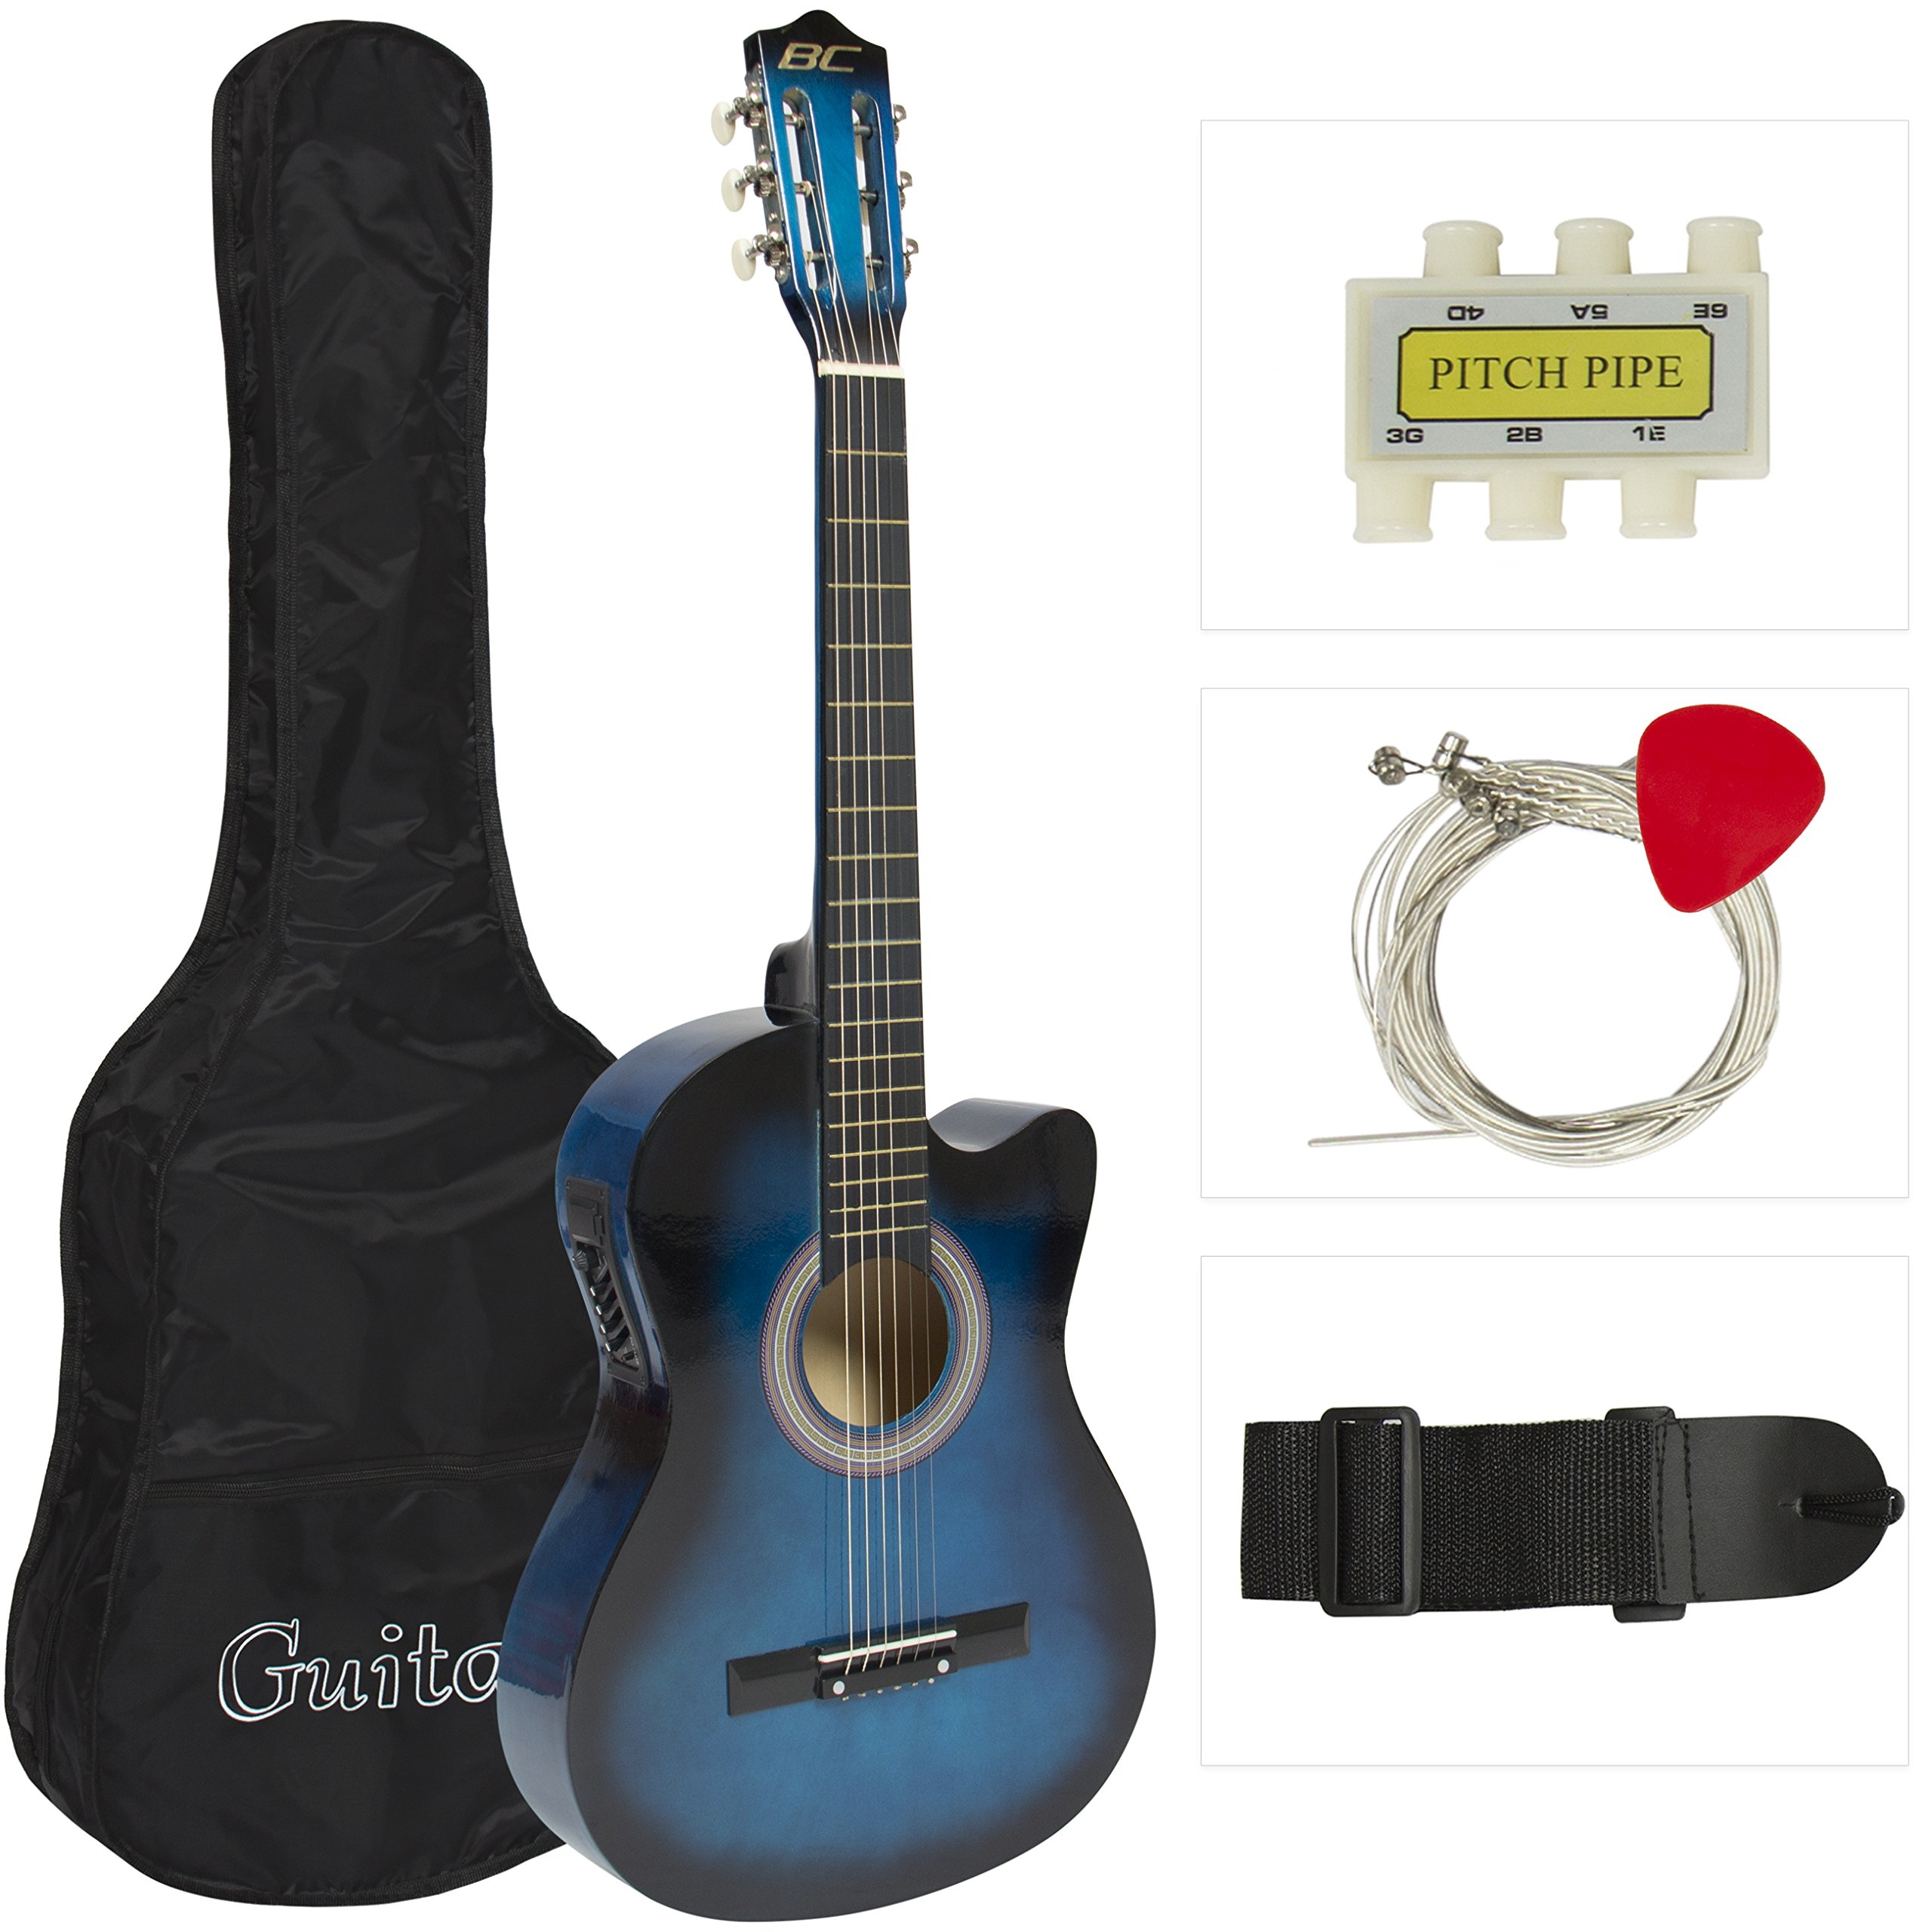 Best Choice Products 38in Beginners Acoustic Electric Cutaway Guitar w/ Case, Extra Strings, Strap, Tuner, Pick - Blue by Best Choice Products